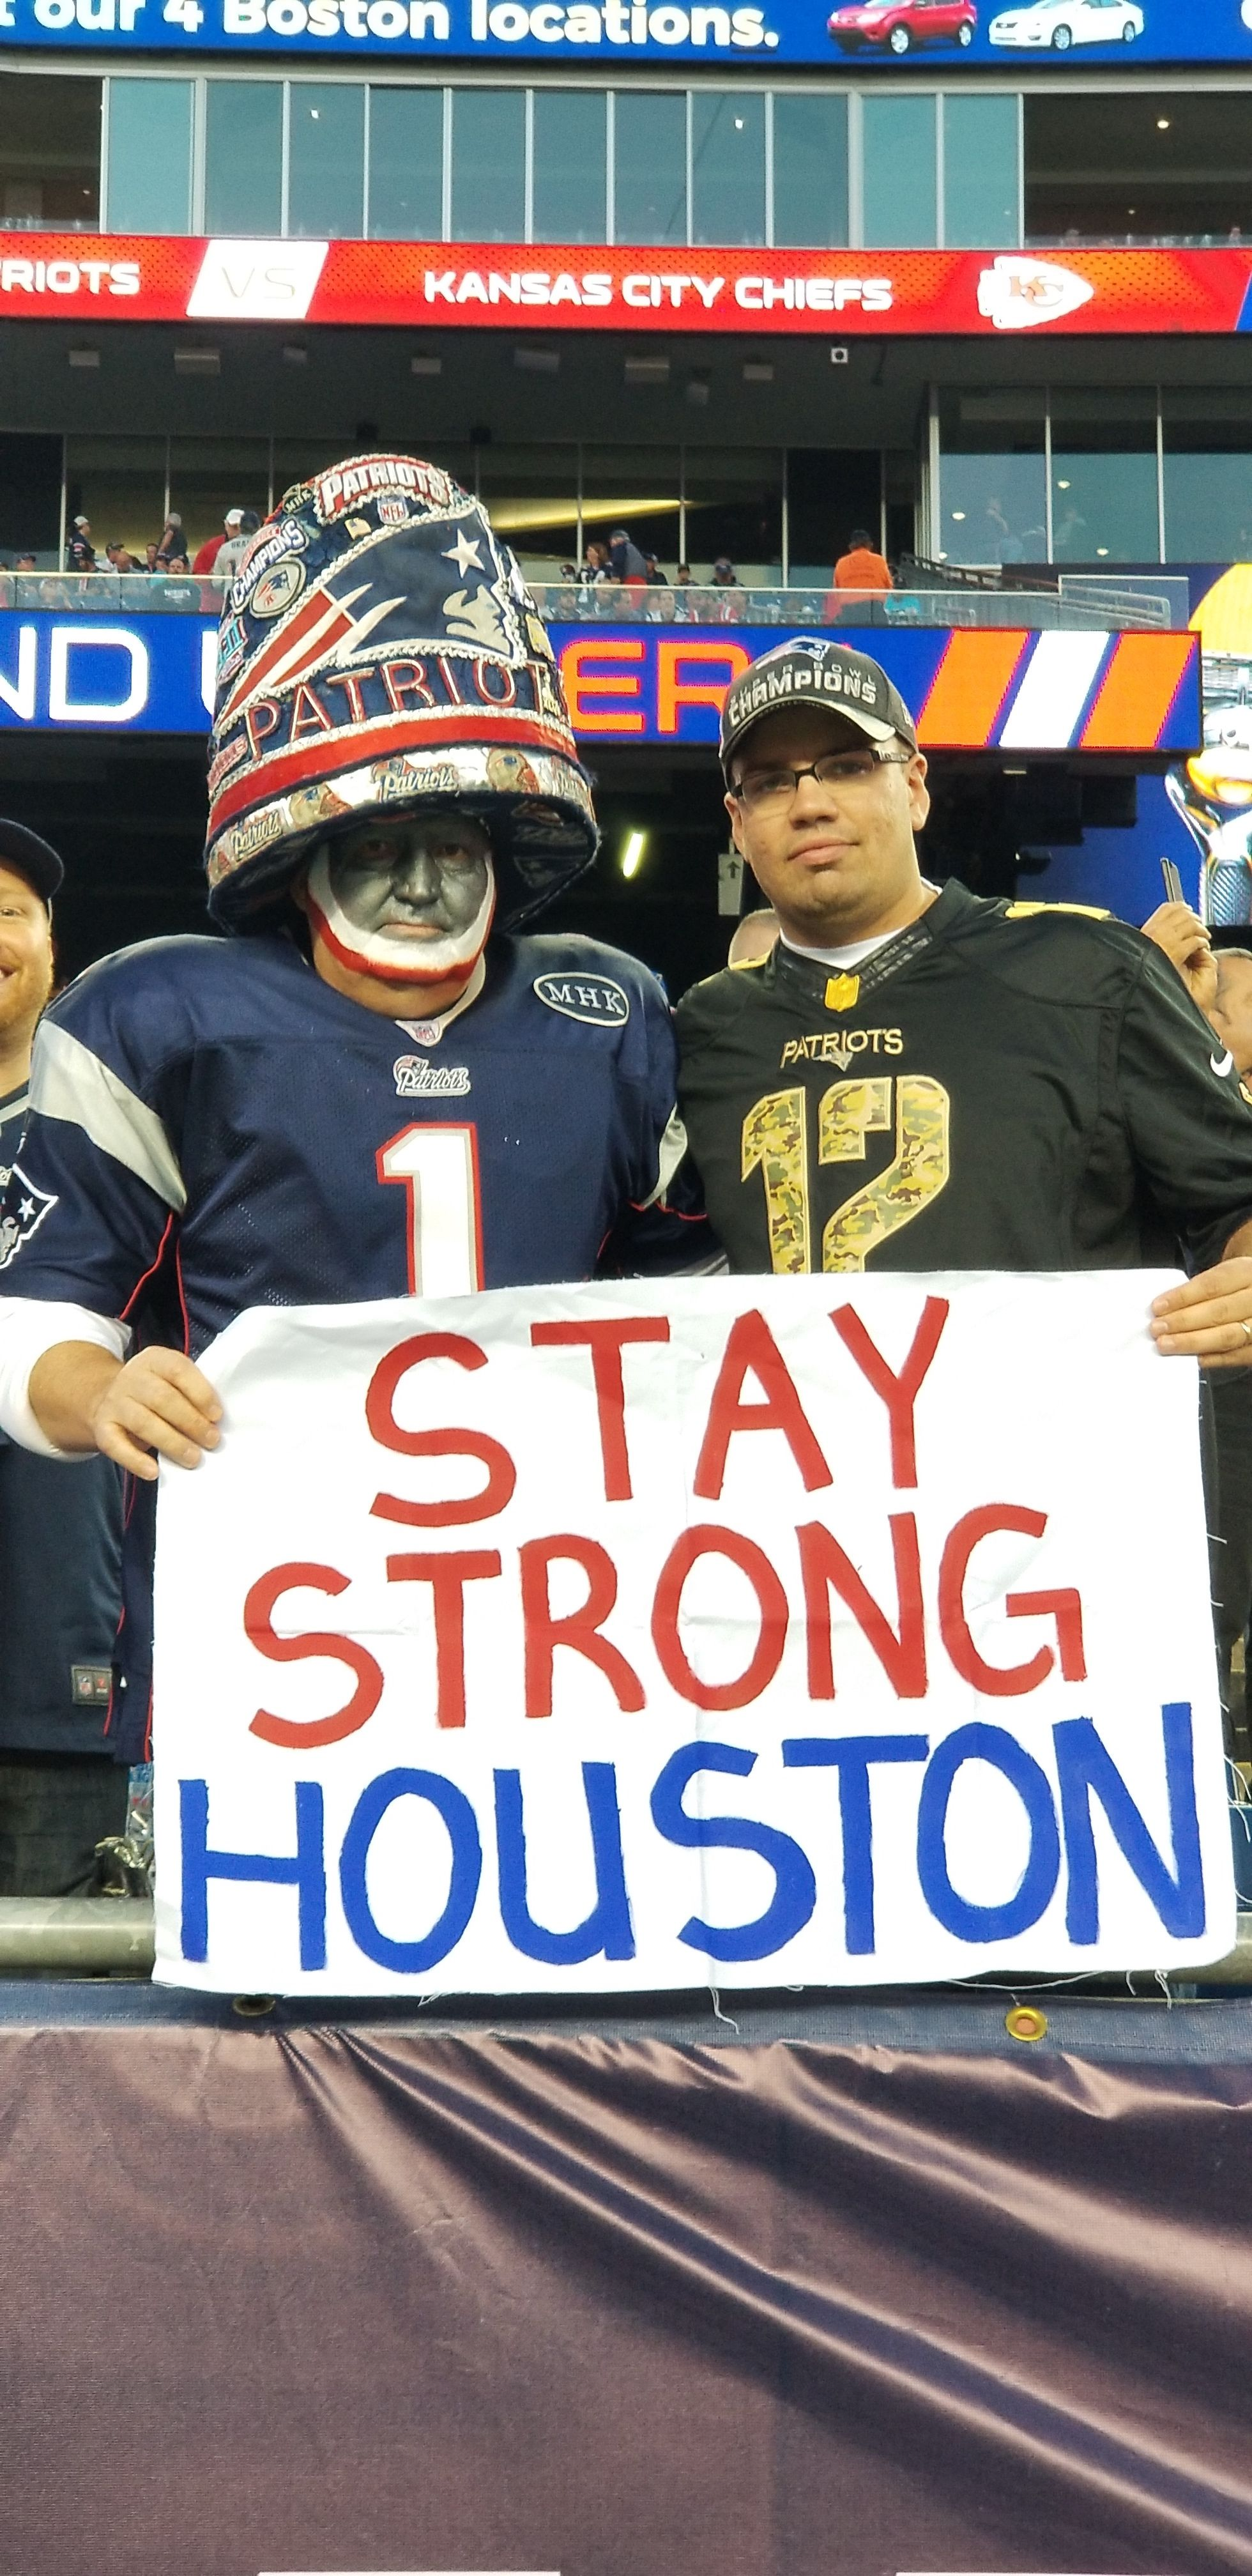 Across The Nfl Our Hearts And Minds Were With Houston In Week 1 As They Recovered From Hurricane Harvey Nfl Fantasy New England Patriots Kansas City Chiefs